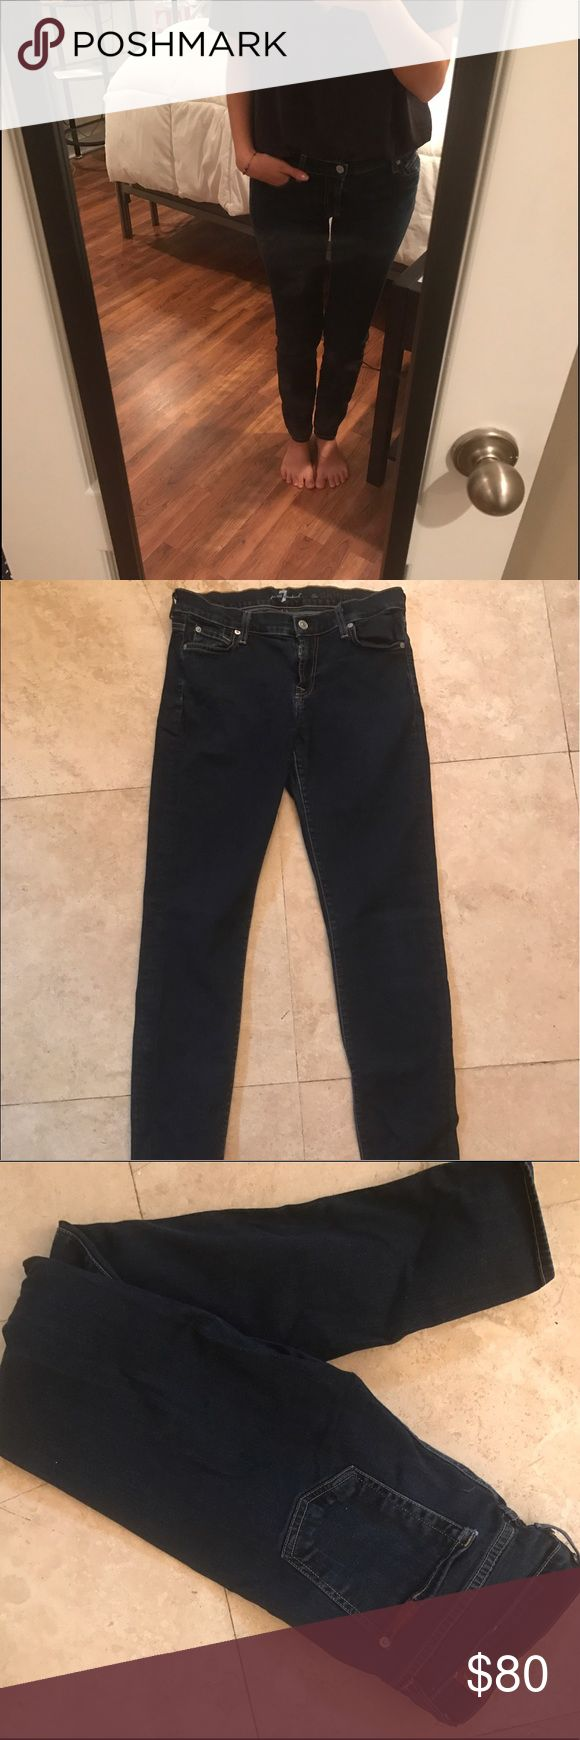 """7 for all Mankind Skinny Jeans 7 For All Mankind """"The Skinny"""" Jeans. In great condition! I don't remember the exact color they are but I think they're in """"Rinsed Indigo"""" 7 For All Mankind Jeans Skinny"""